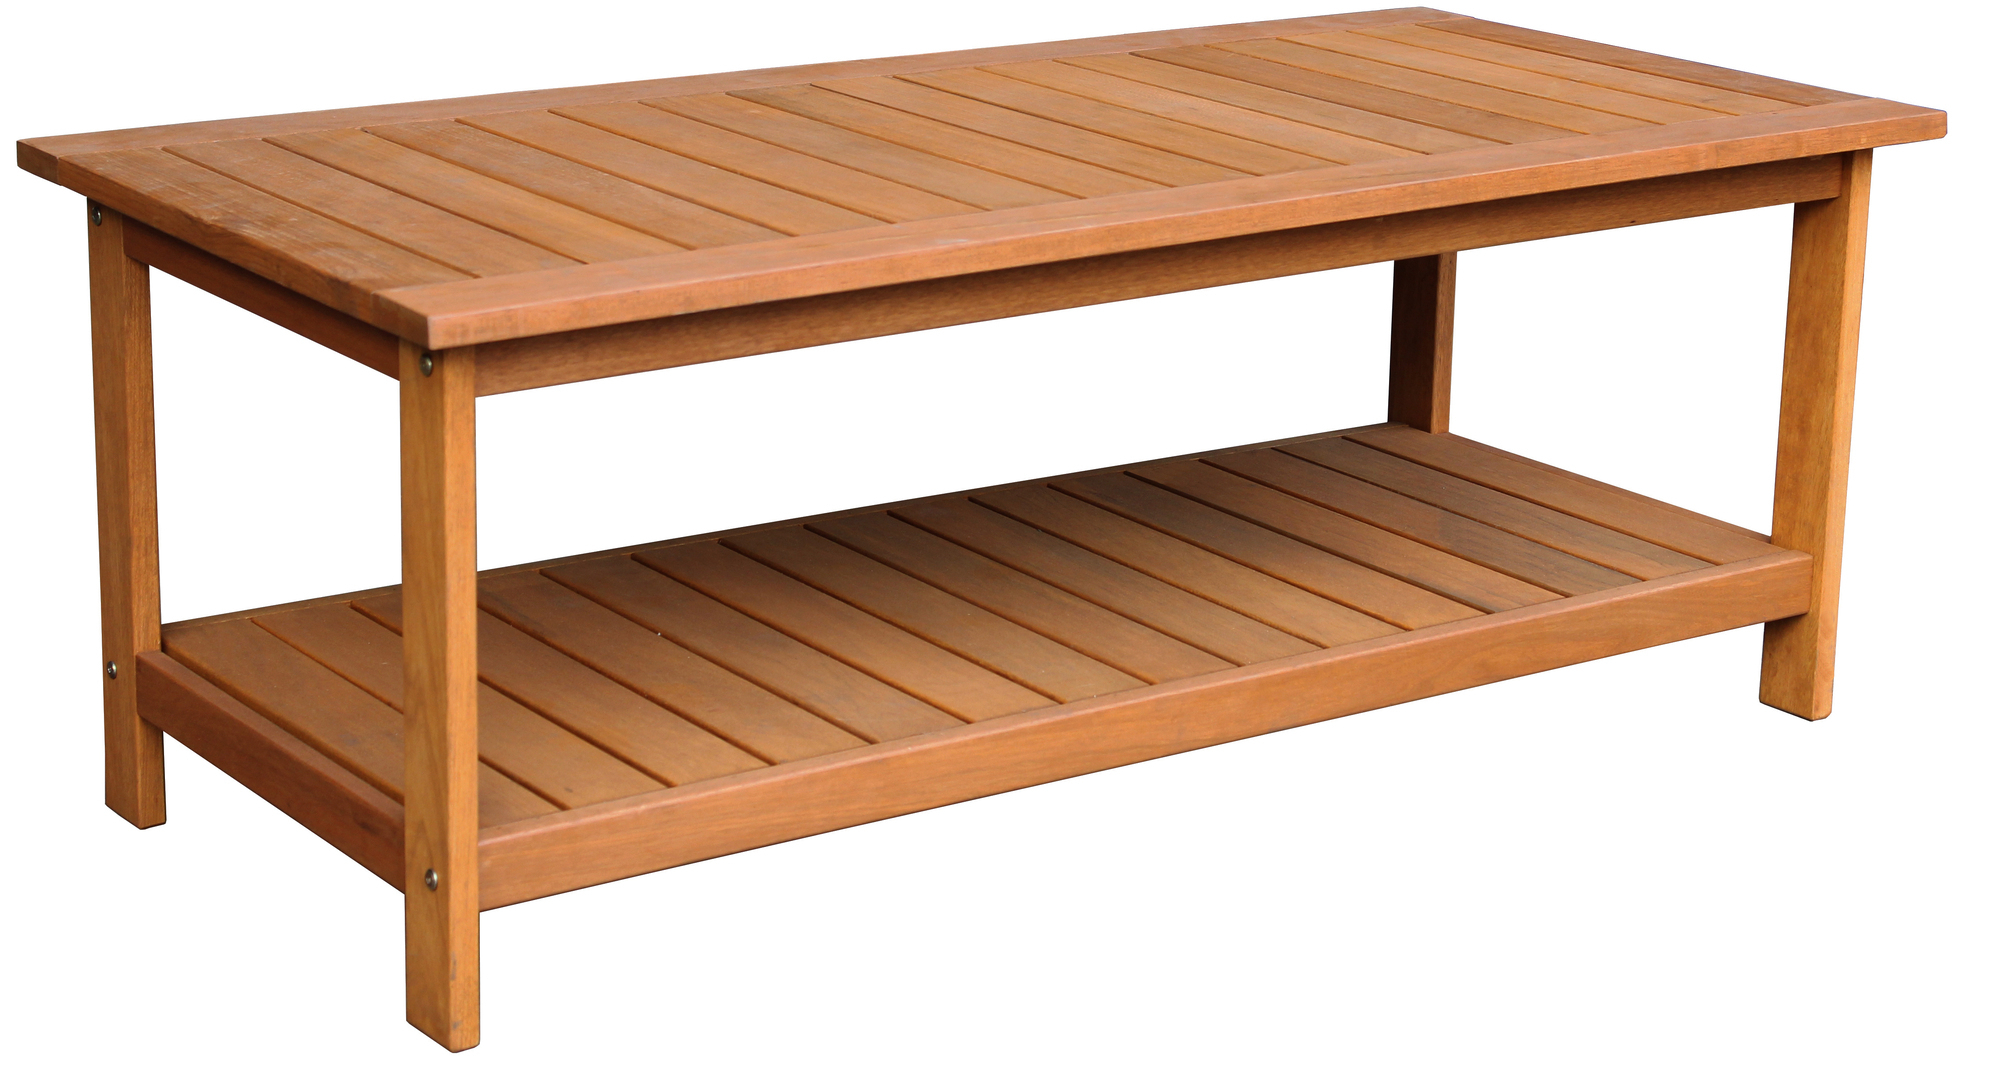 Natural Avoca Wood Outdoor Coffee Table With Avoca Wood Garden Benches (View 9 of 25)